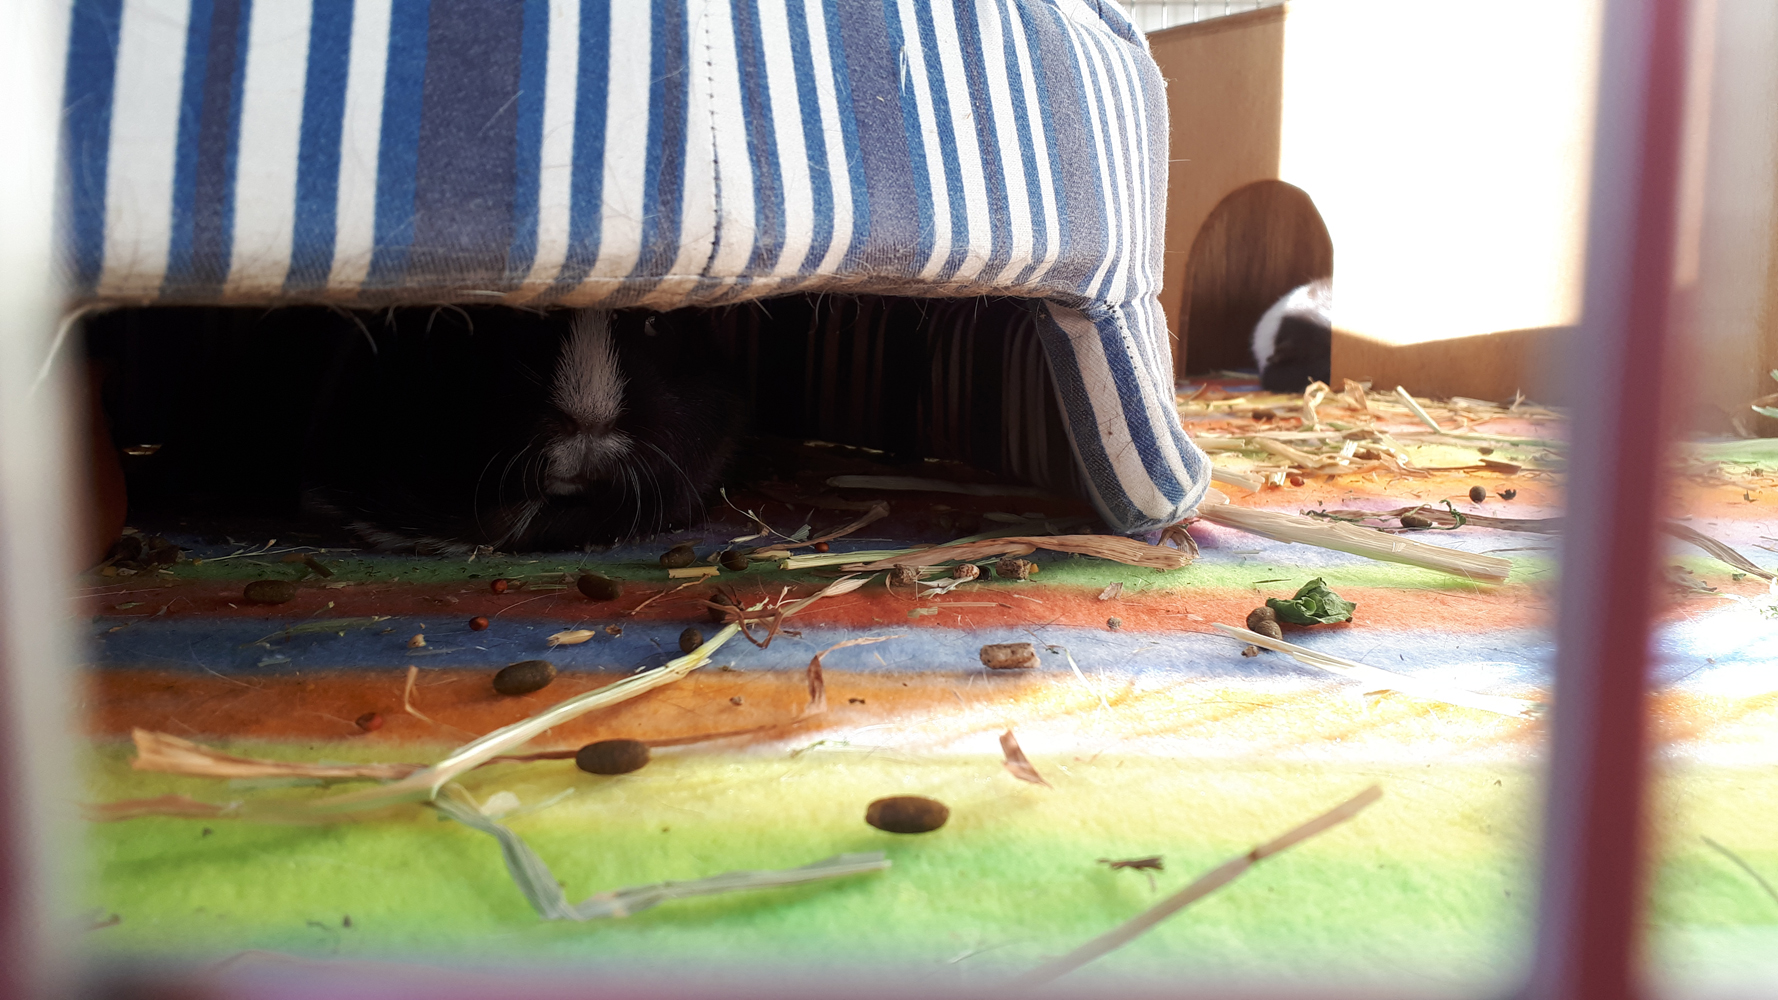 Some Guinea Pig Dwelling Upgrades…